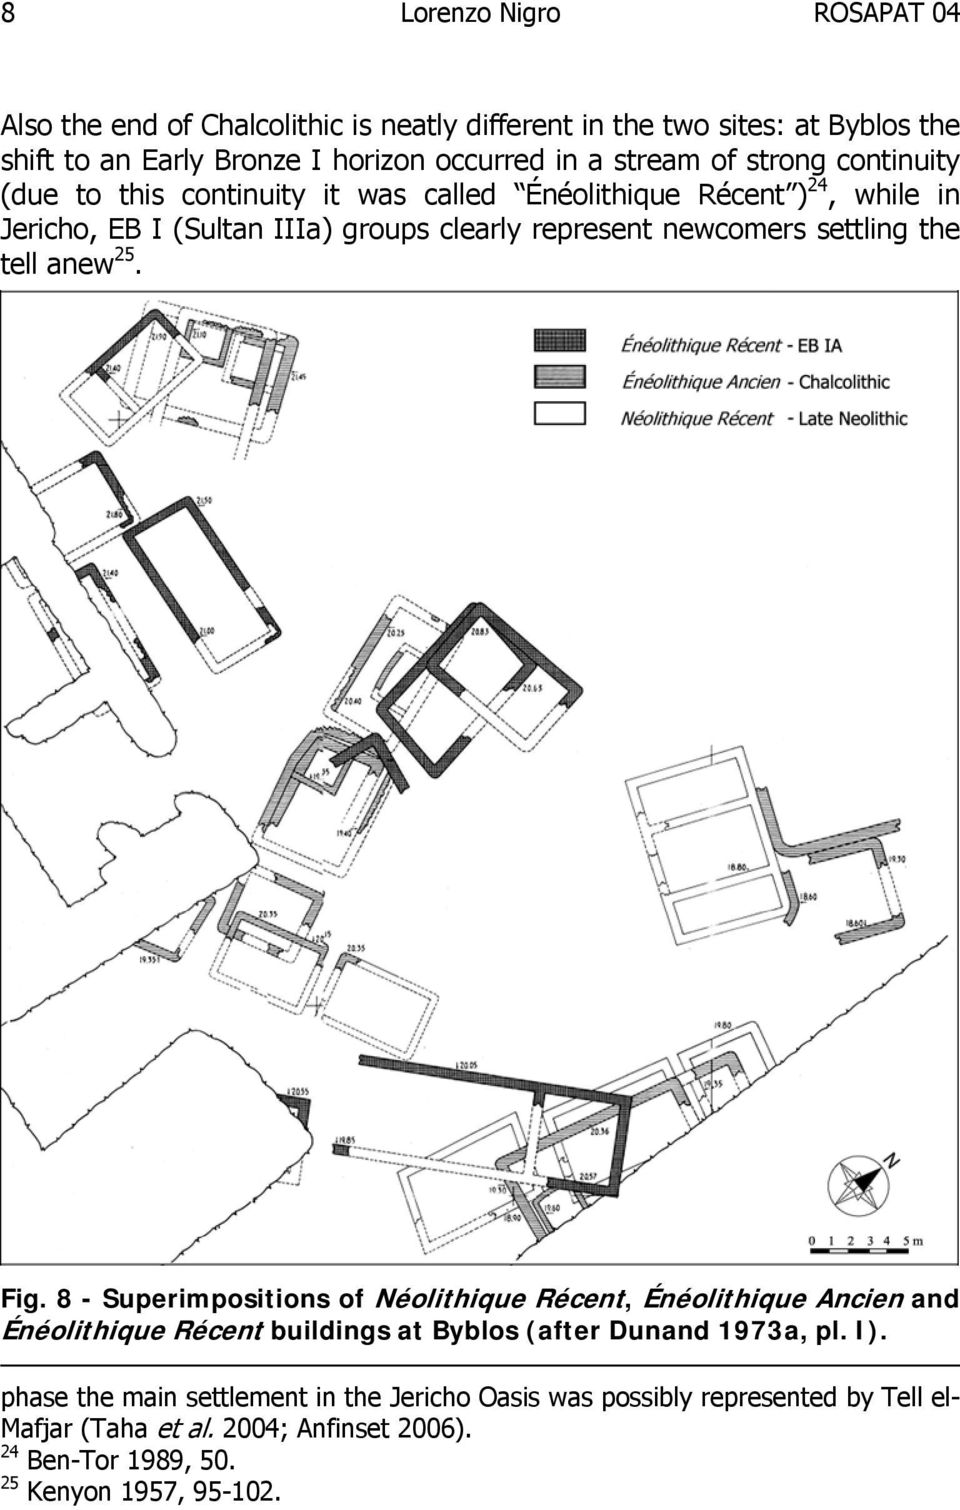 settling the tell anew 25. Fig. 8 - Superimpositions of Néolithique Récent, Énéolithique Ancien and Énéolithique Récent buildings at Byblos (after Dunand 1973a, pl.